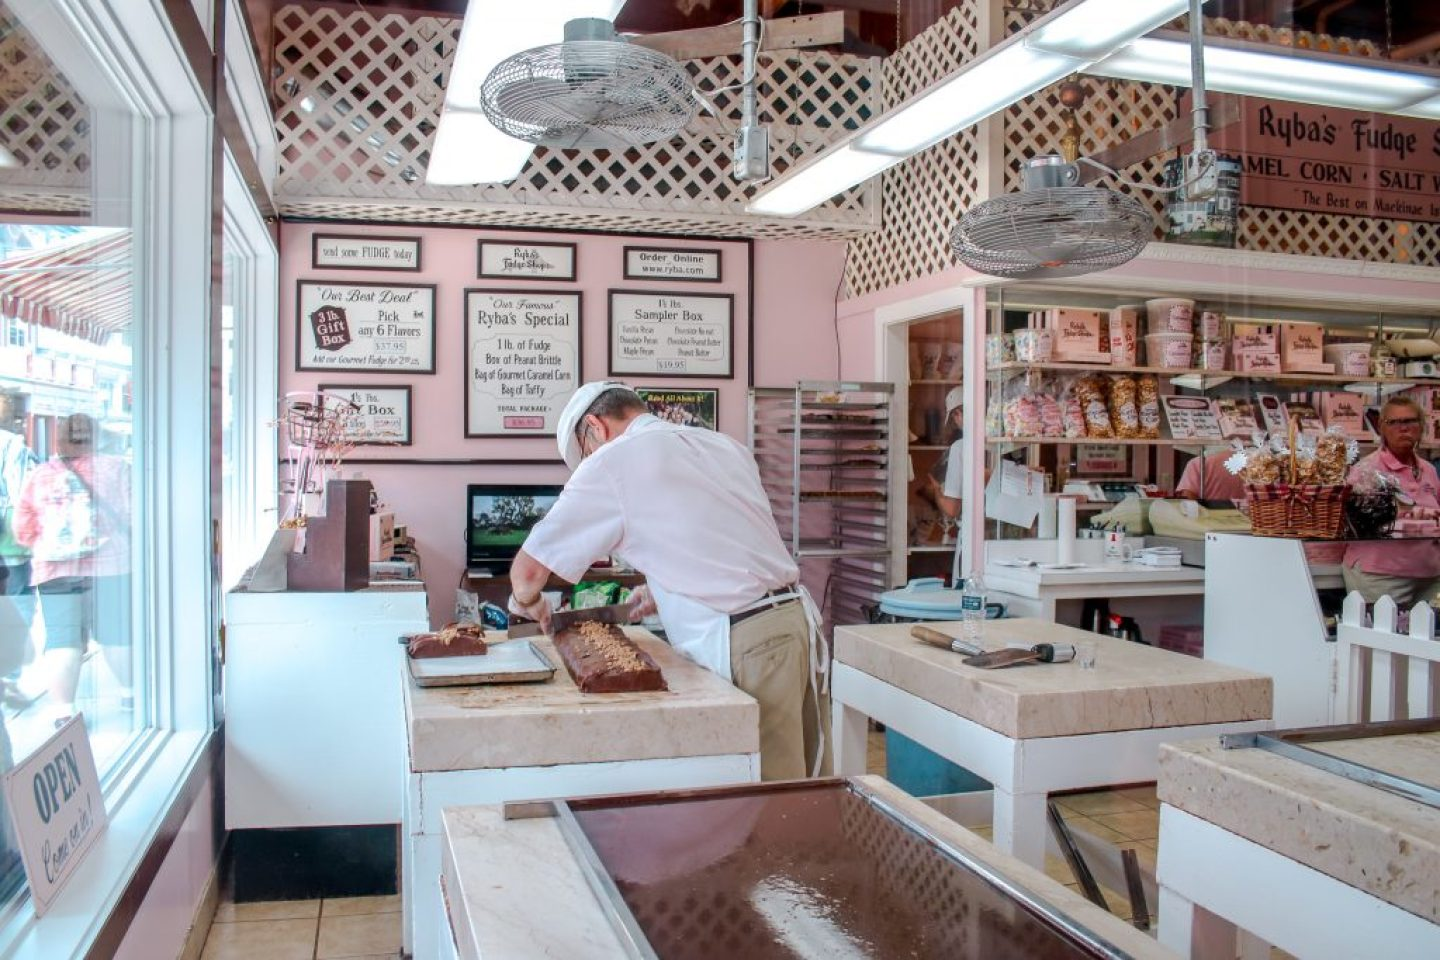 Mackinac Island Fudge: history, vendors, flavors, and locations you can find one of my favorite sweet treats!